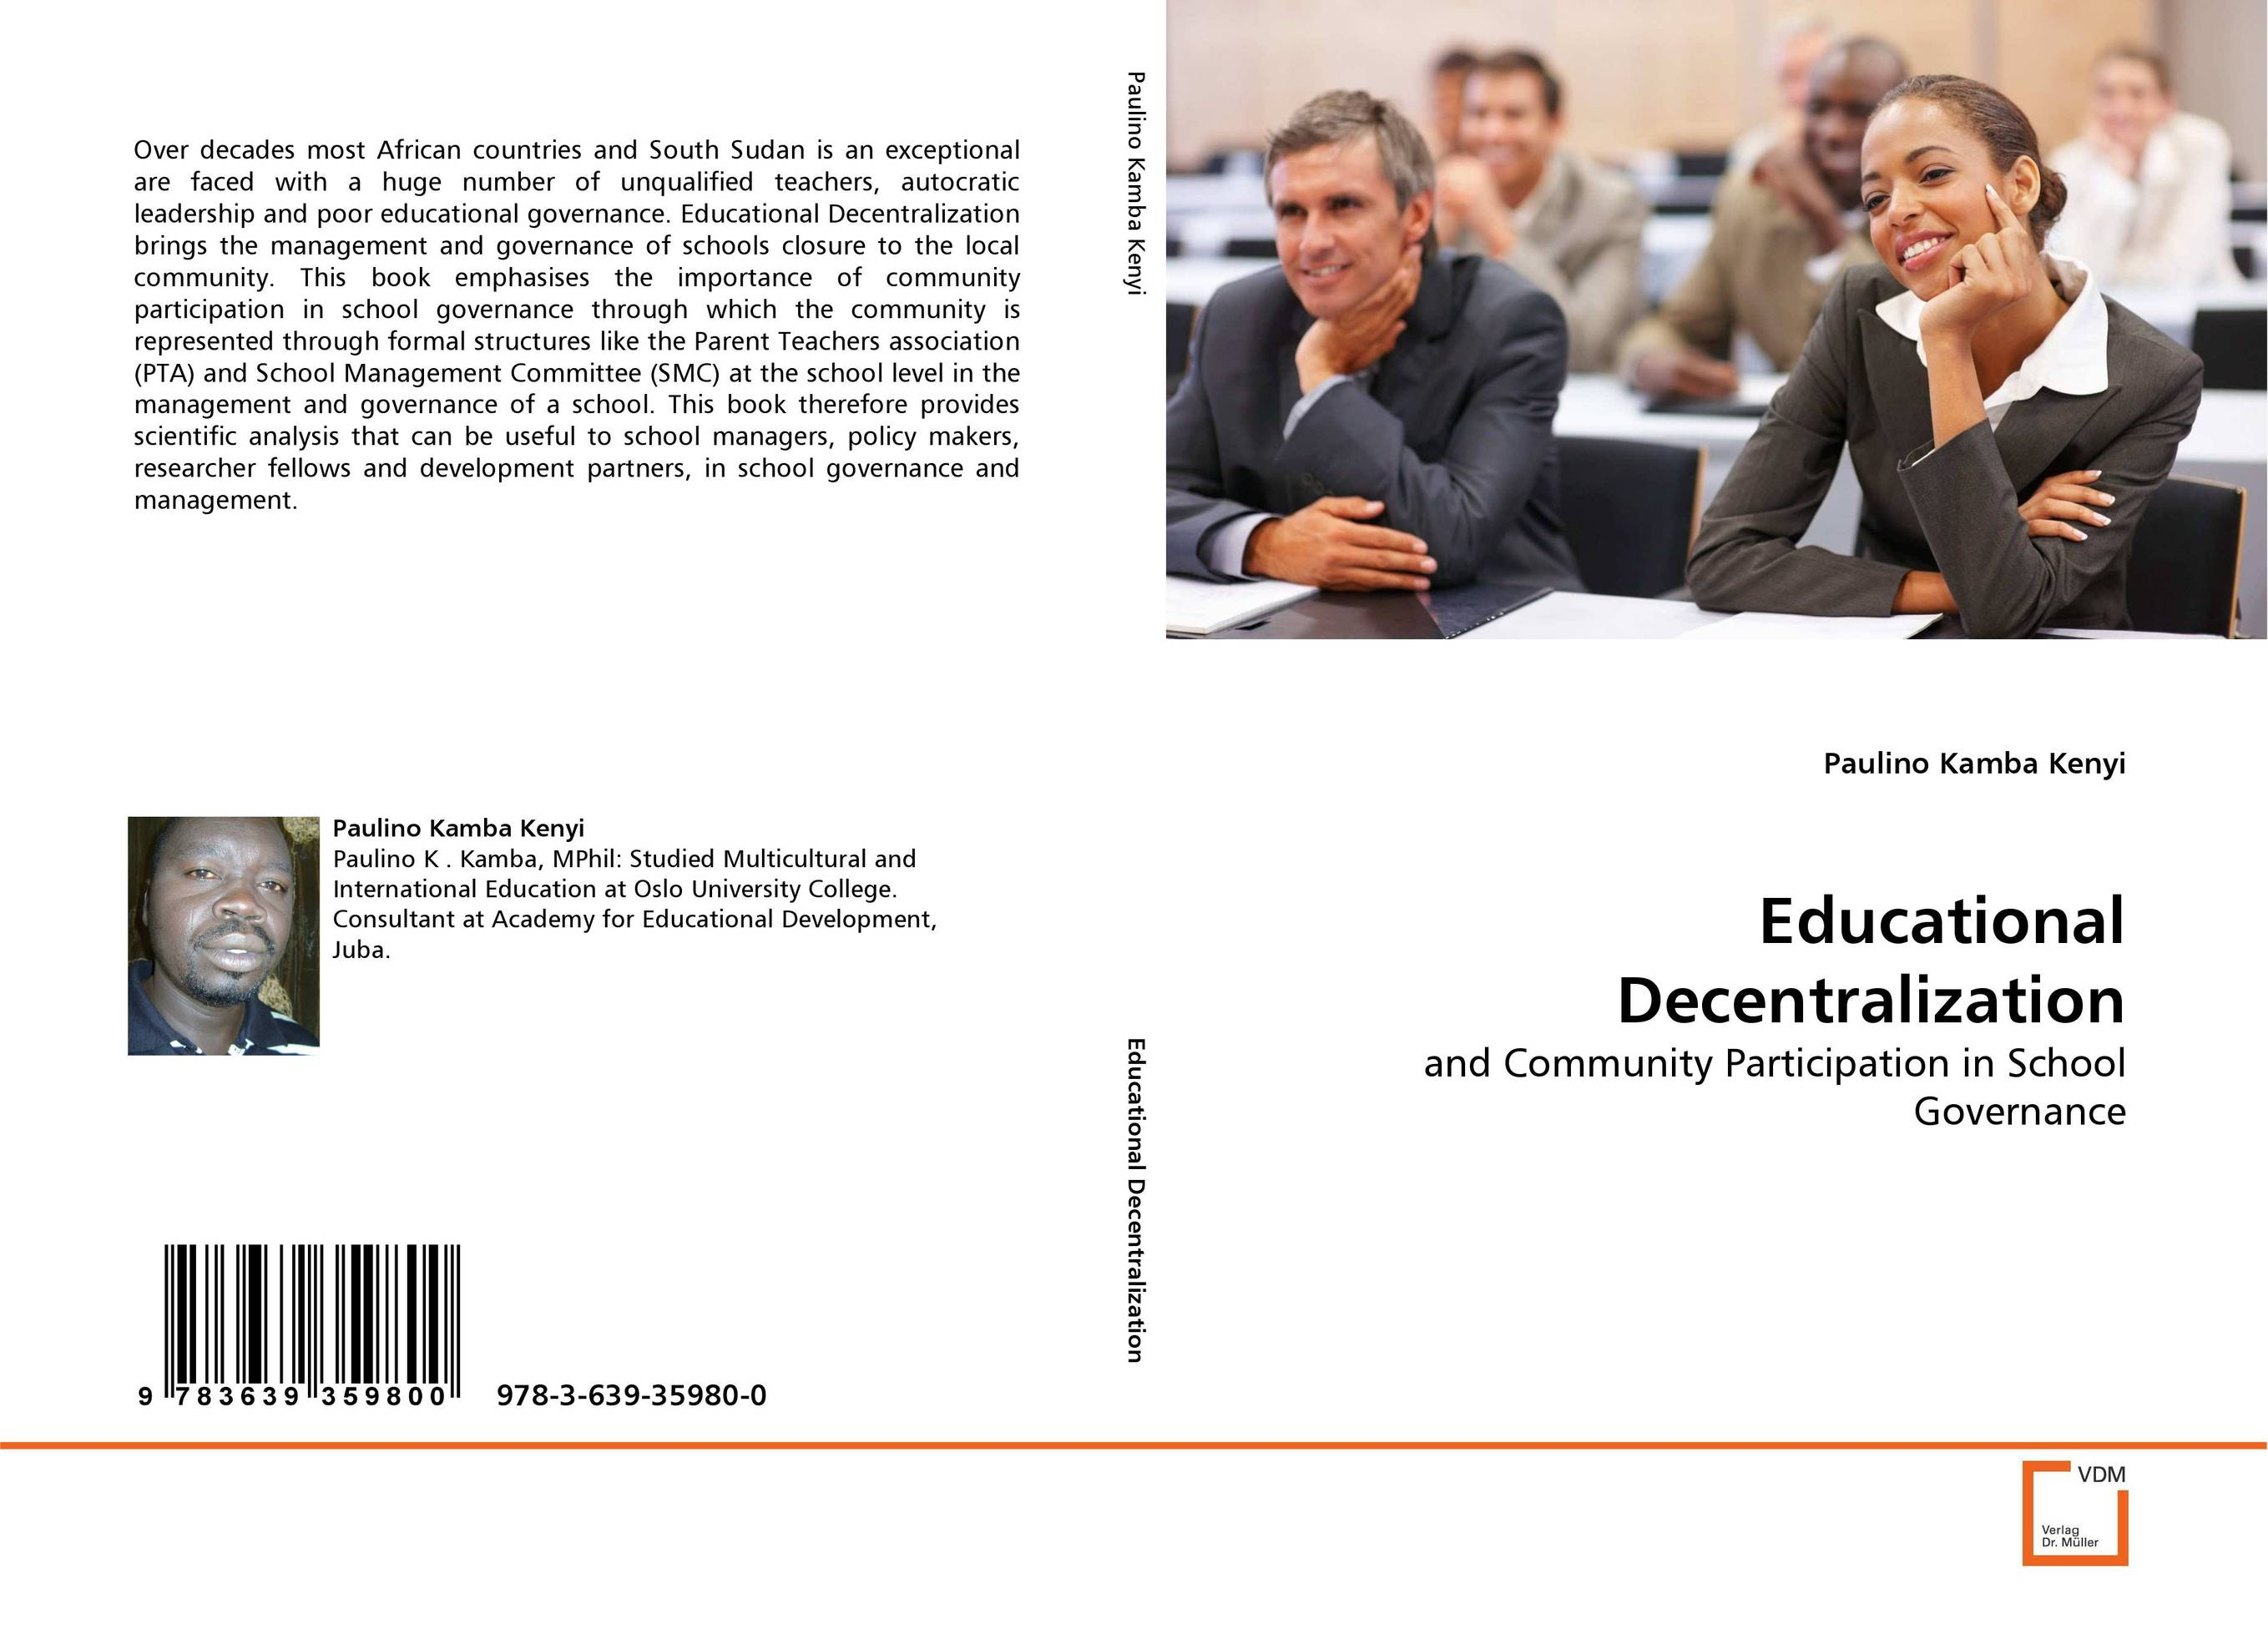 Educational Decentralization jeffrey sonnenfeld leadership and governance from the inside out